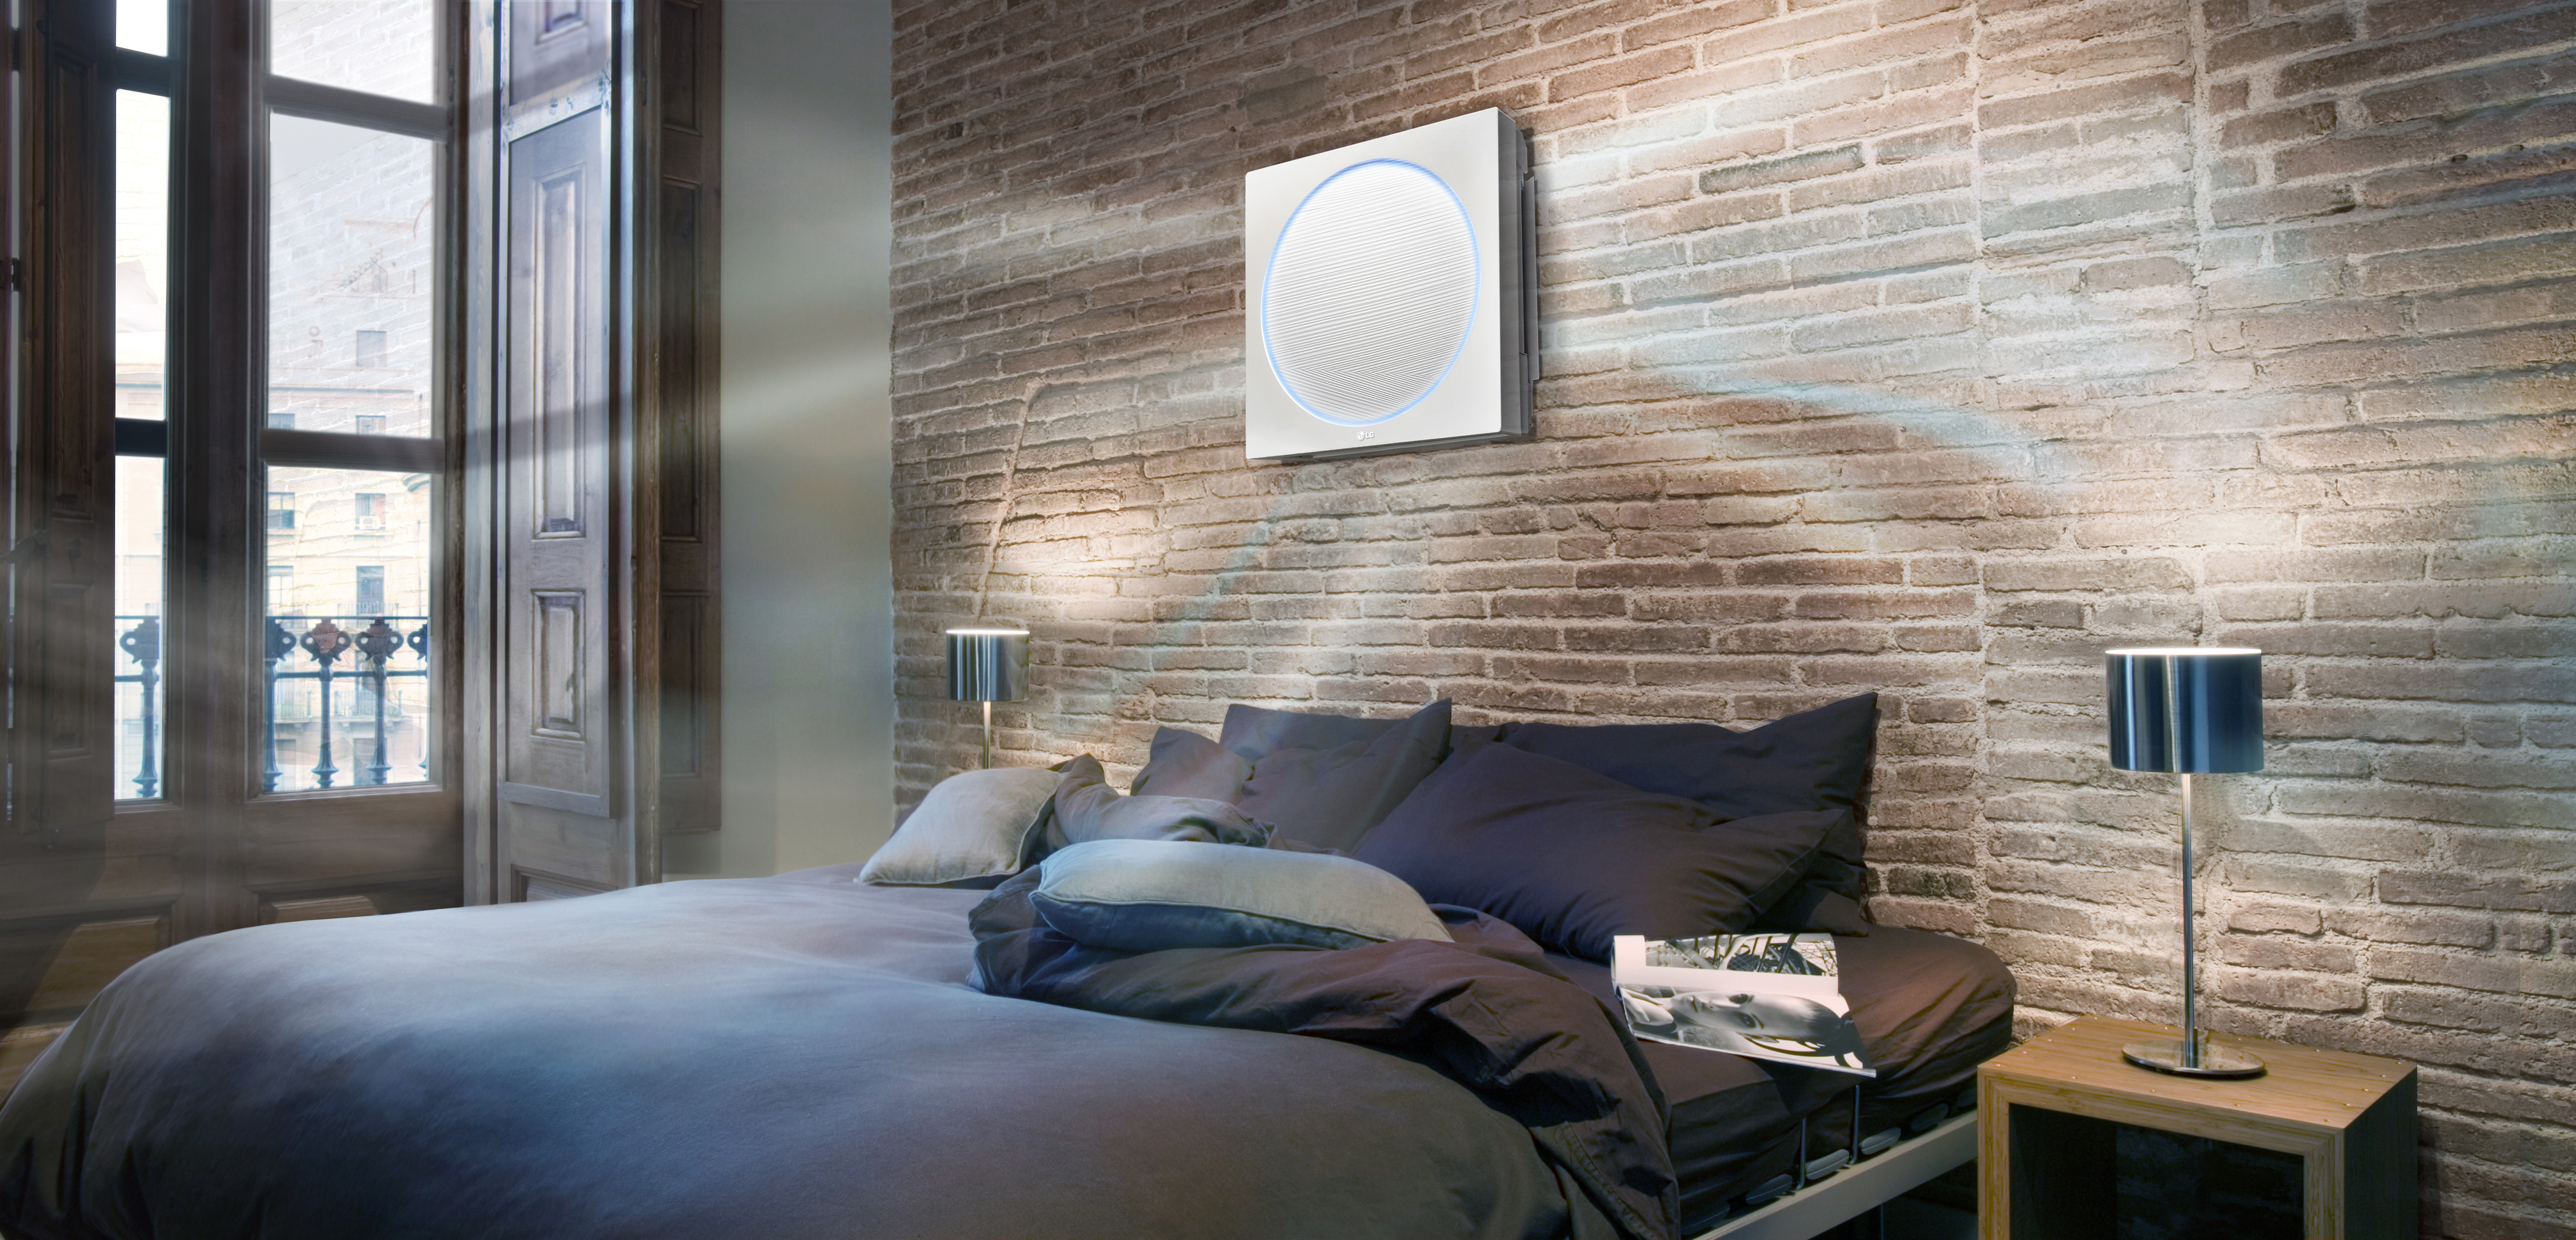 LG ARTCOOL Stylist air conditioner operating in the wall of bedroom